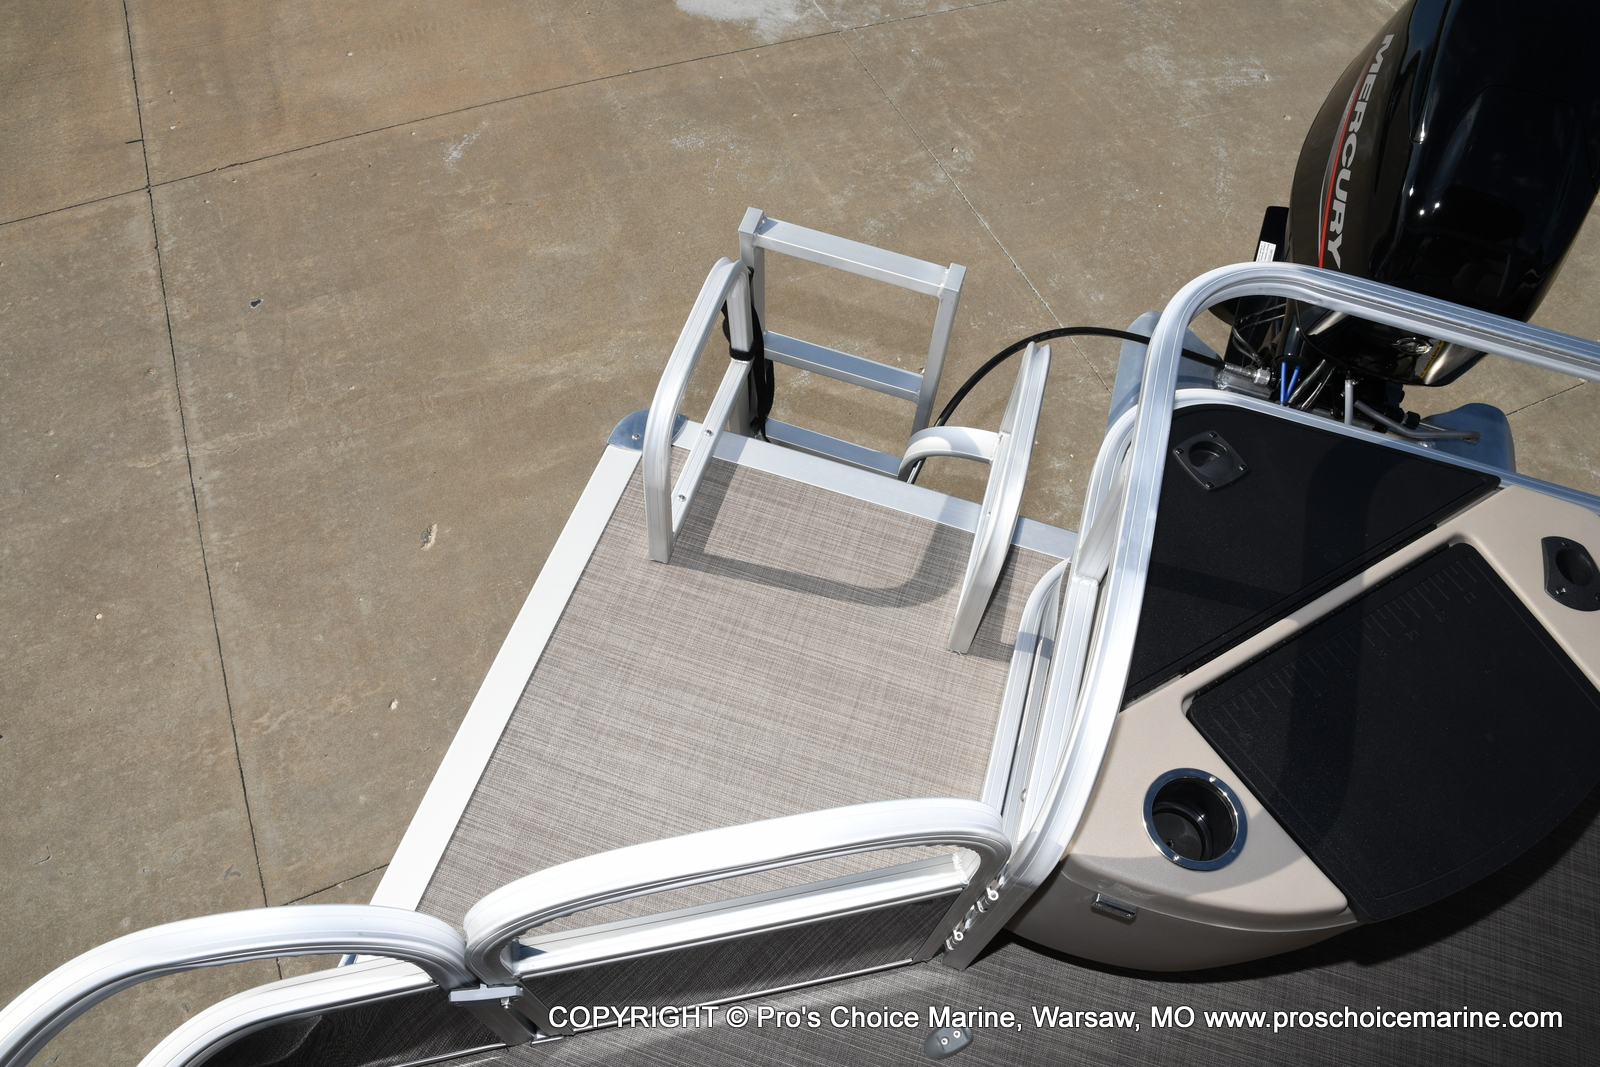 2021 Sun Tracker boat for sale, model of the boat is Bass Buggy 18 DLX & Image # 38 of 46